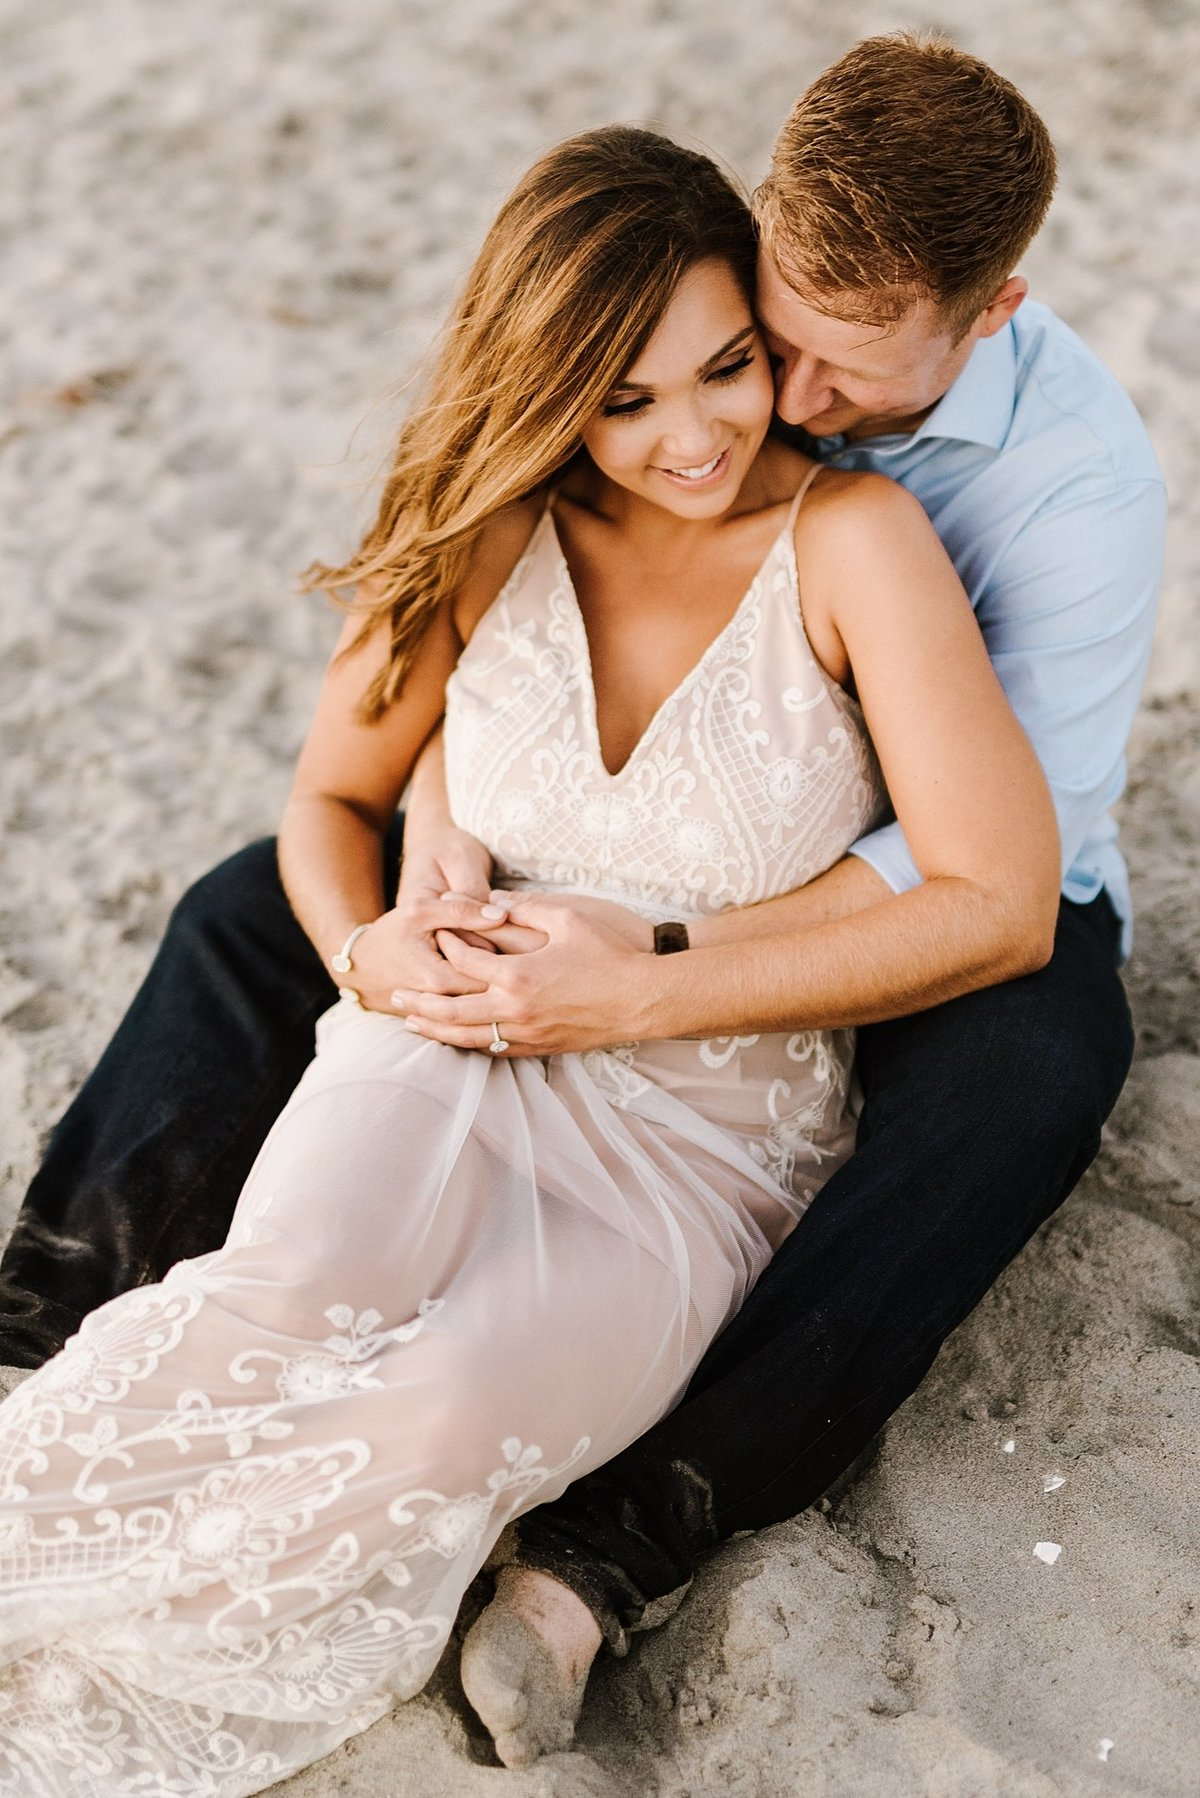 nahant-beach-engagement-session-boston-wedding-photographer-photo_0028